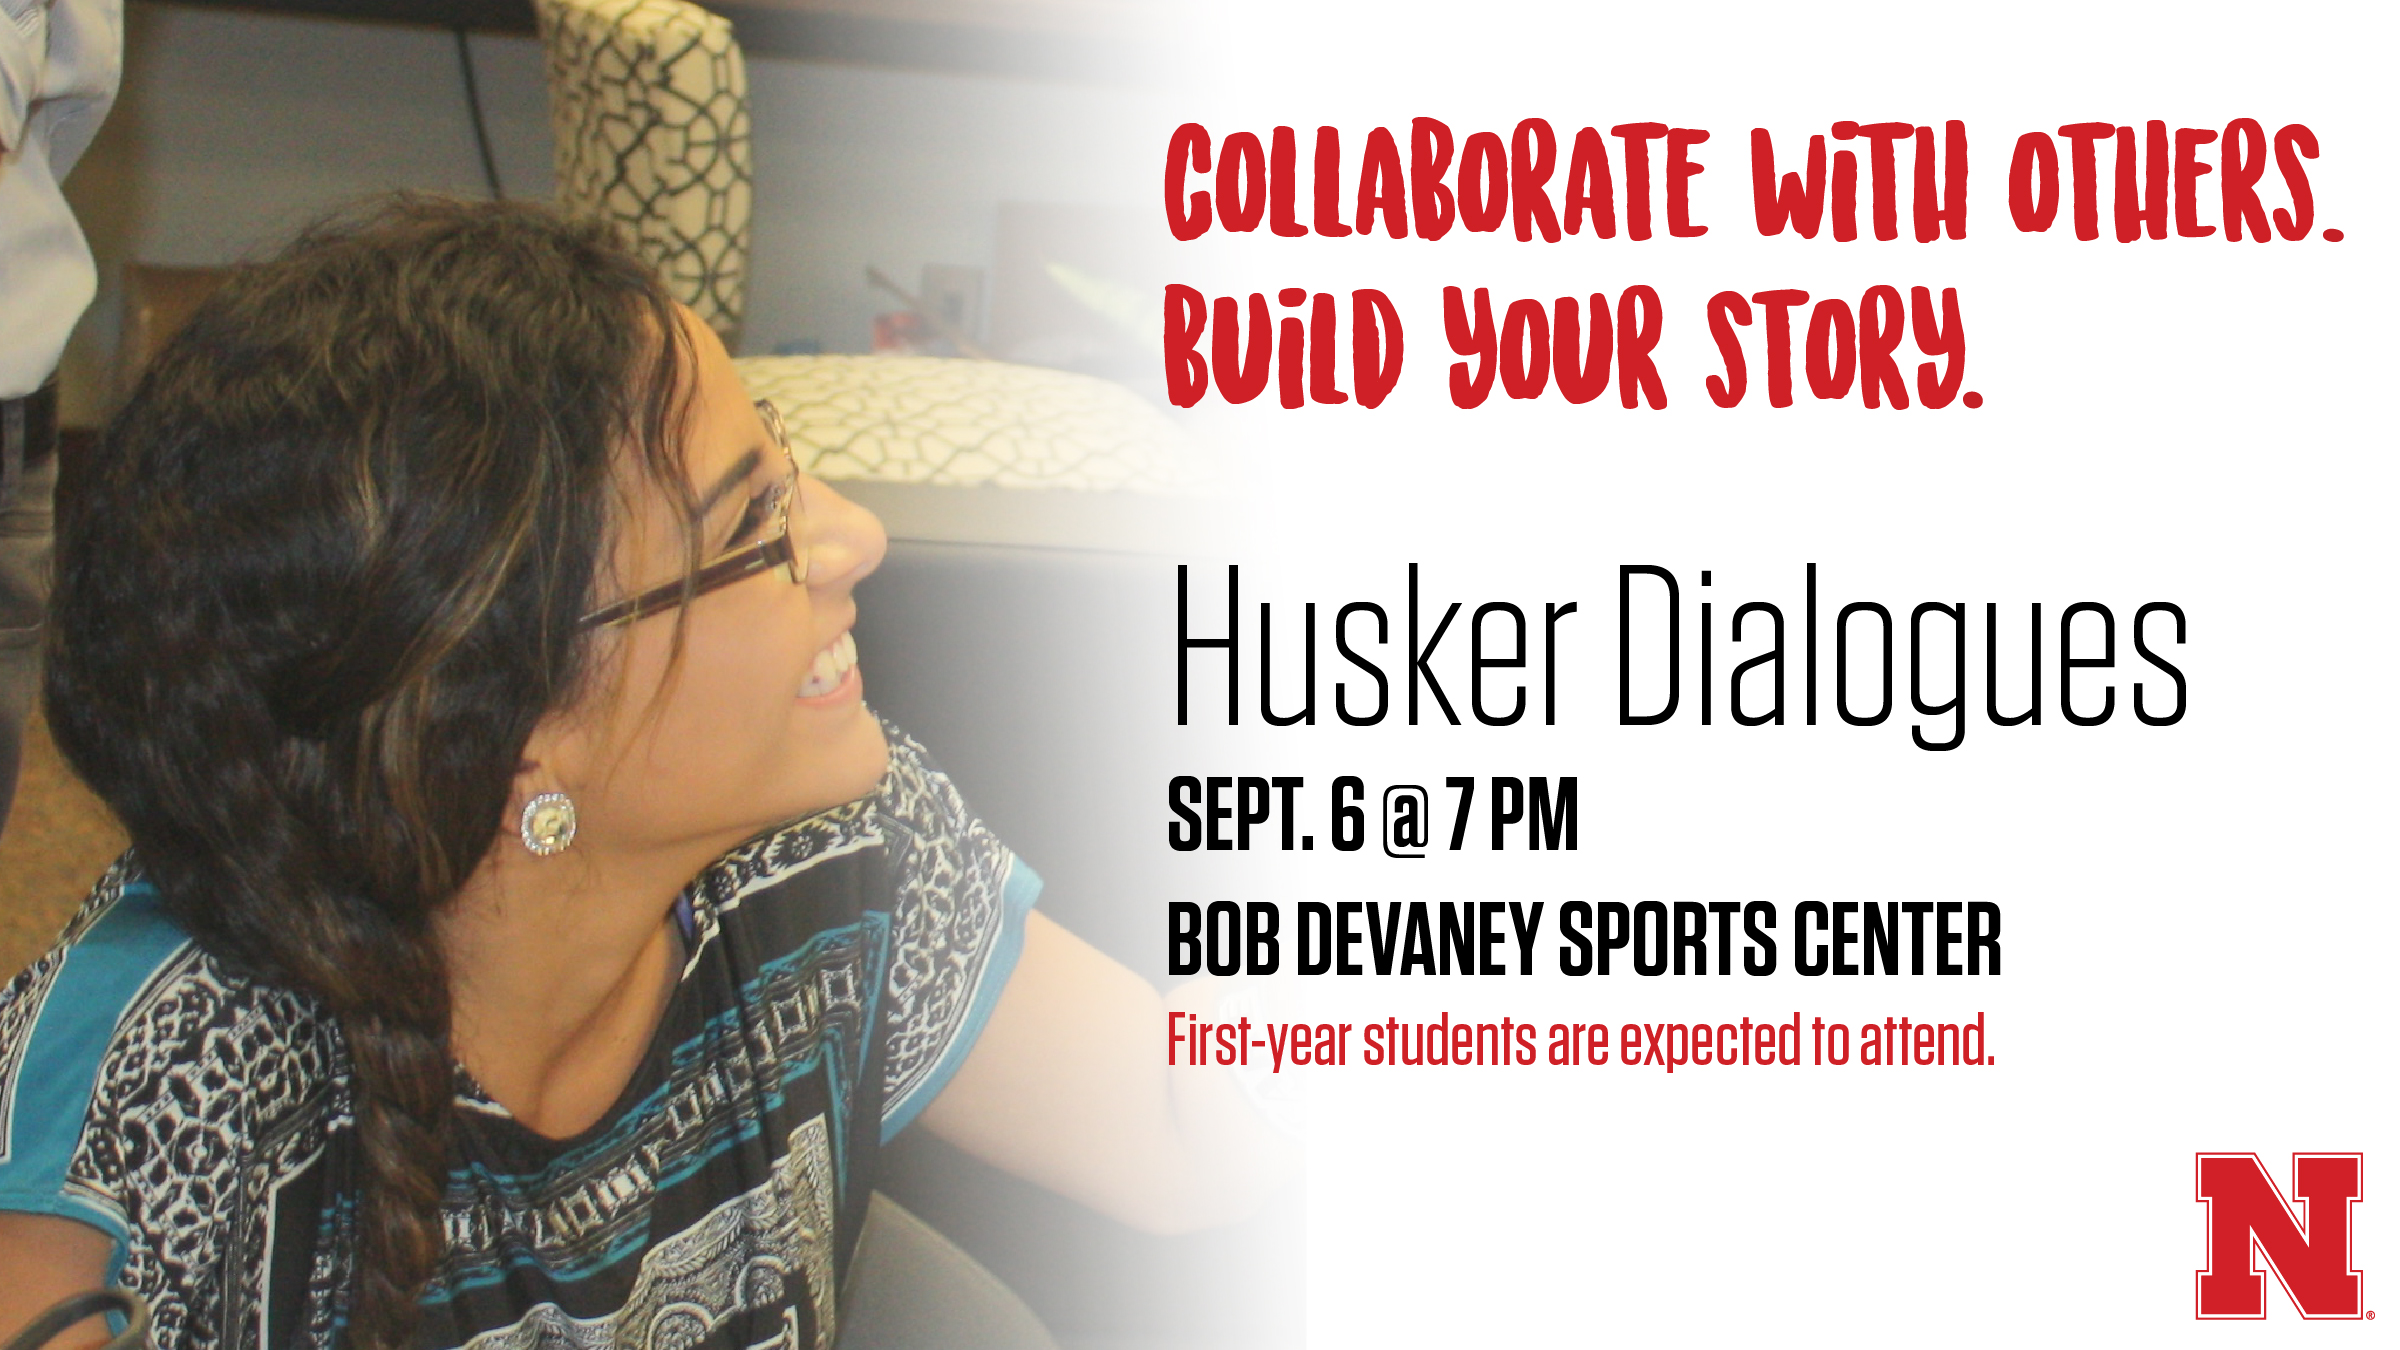 Husker Dialogues is designed to introduce first-year students to tools they can use to engage in meaningful conversations to help create an inclusive Husker community.